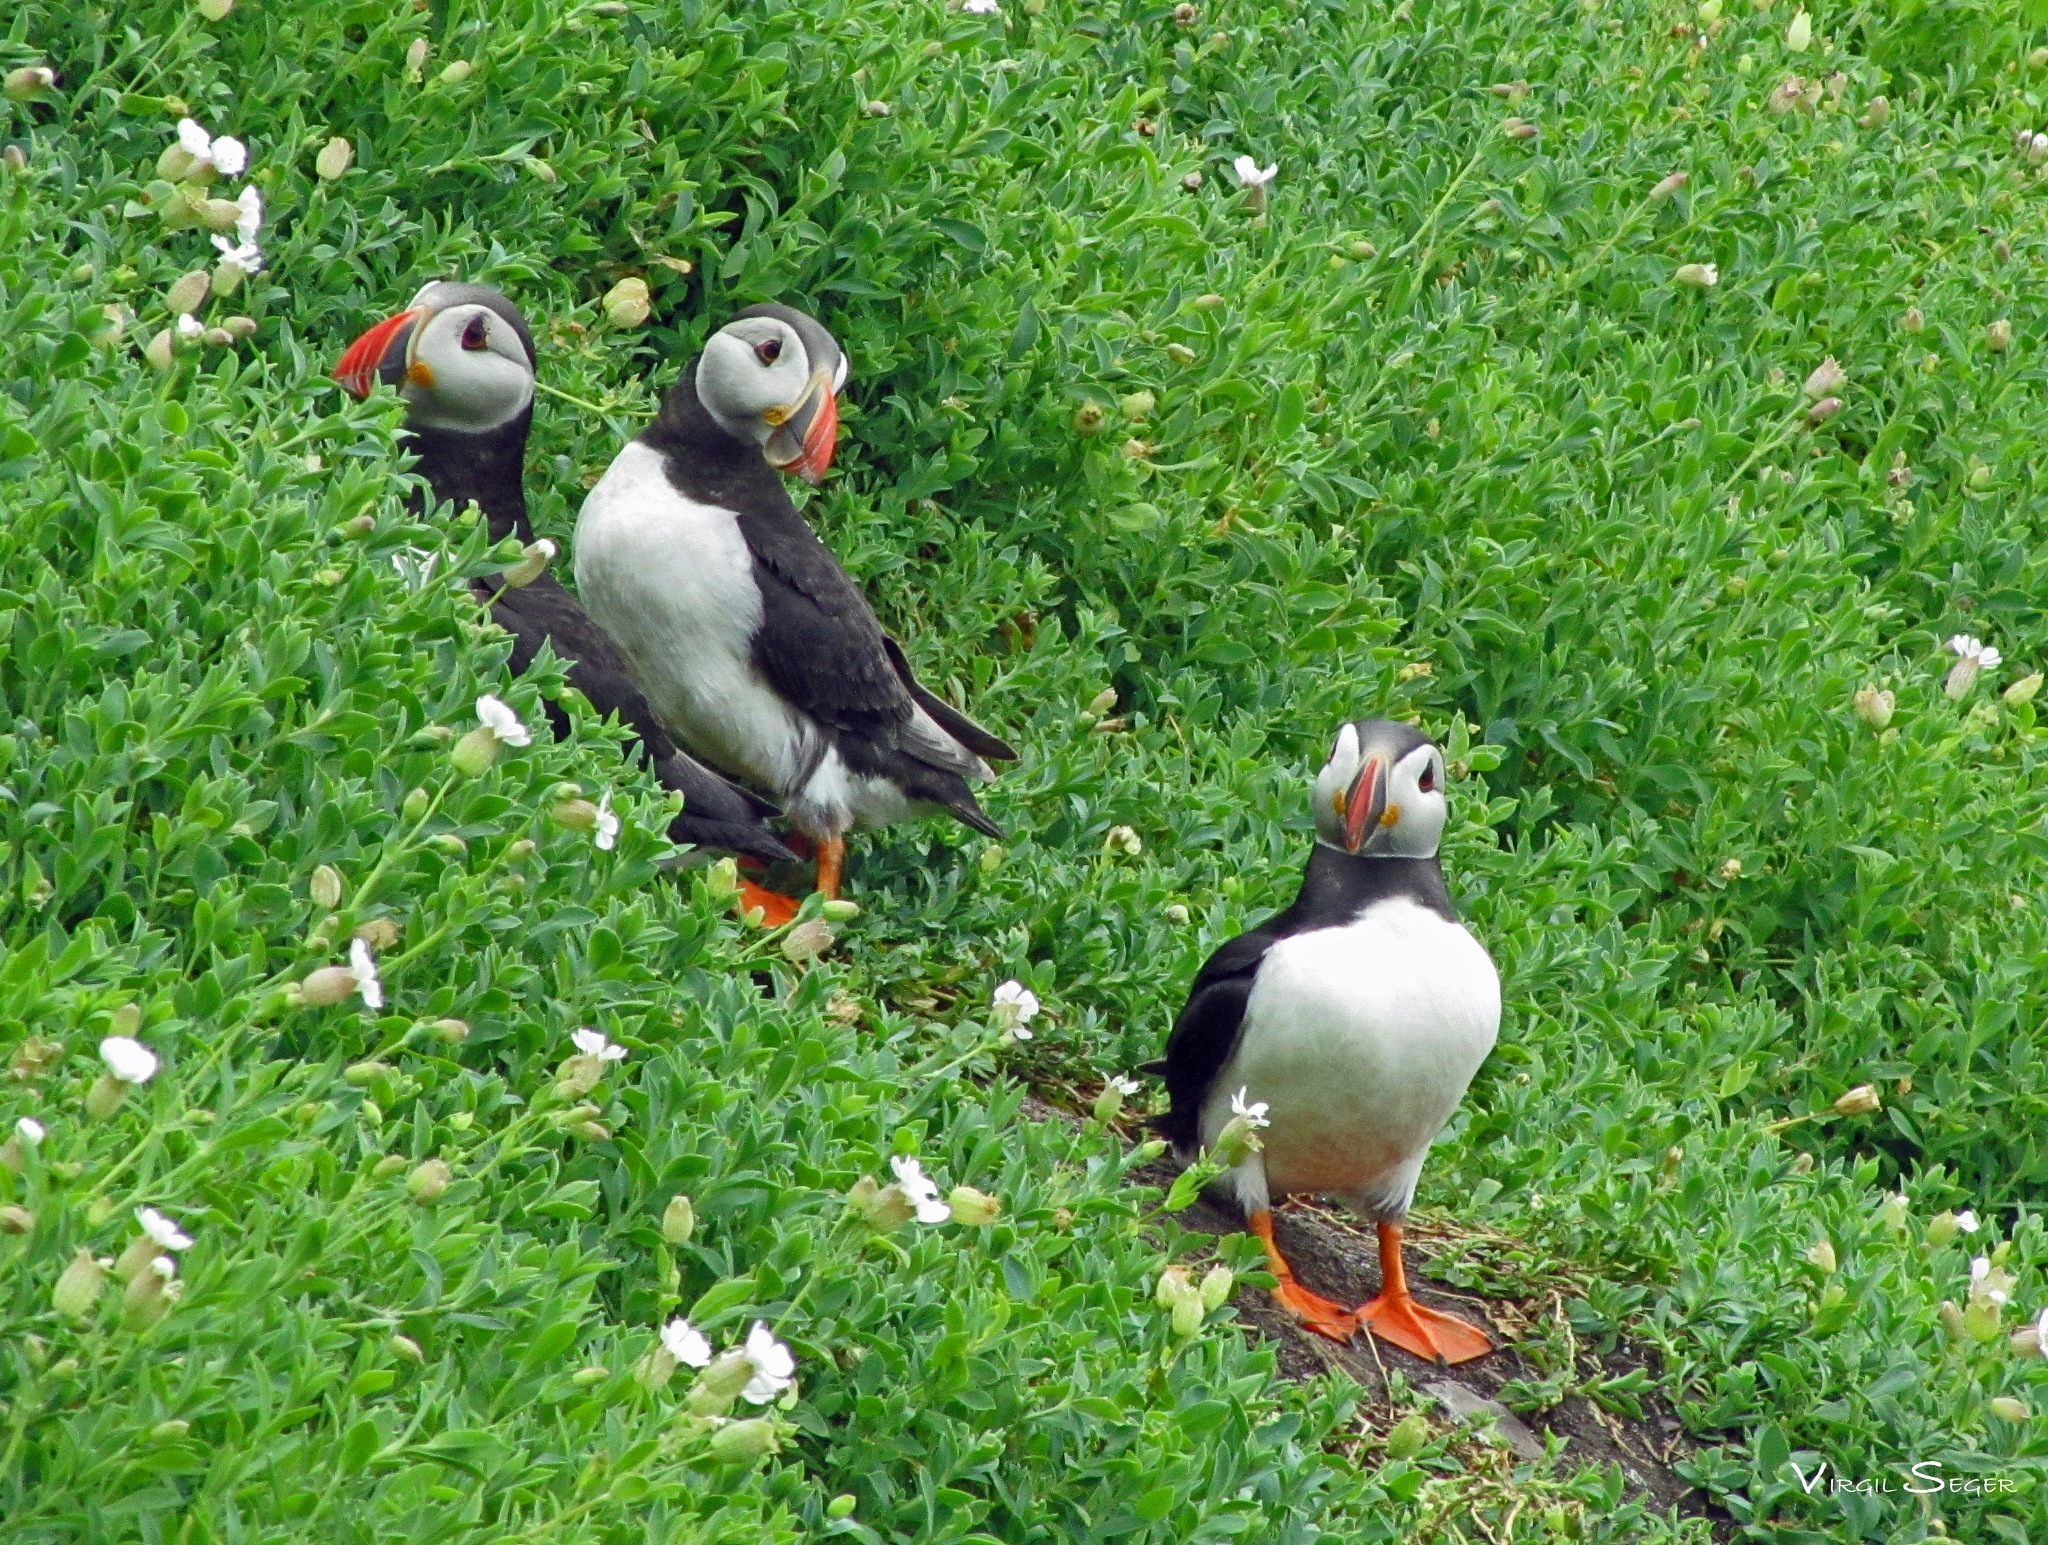 Puffins in Ireland by Virgil Seger